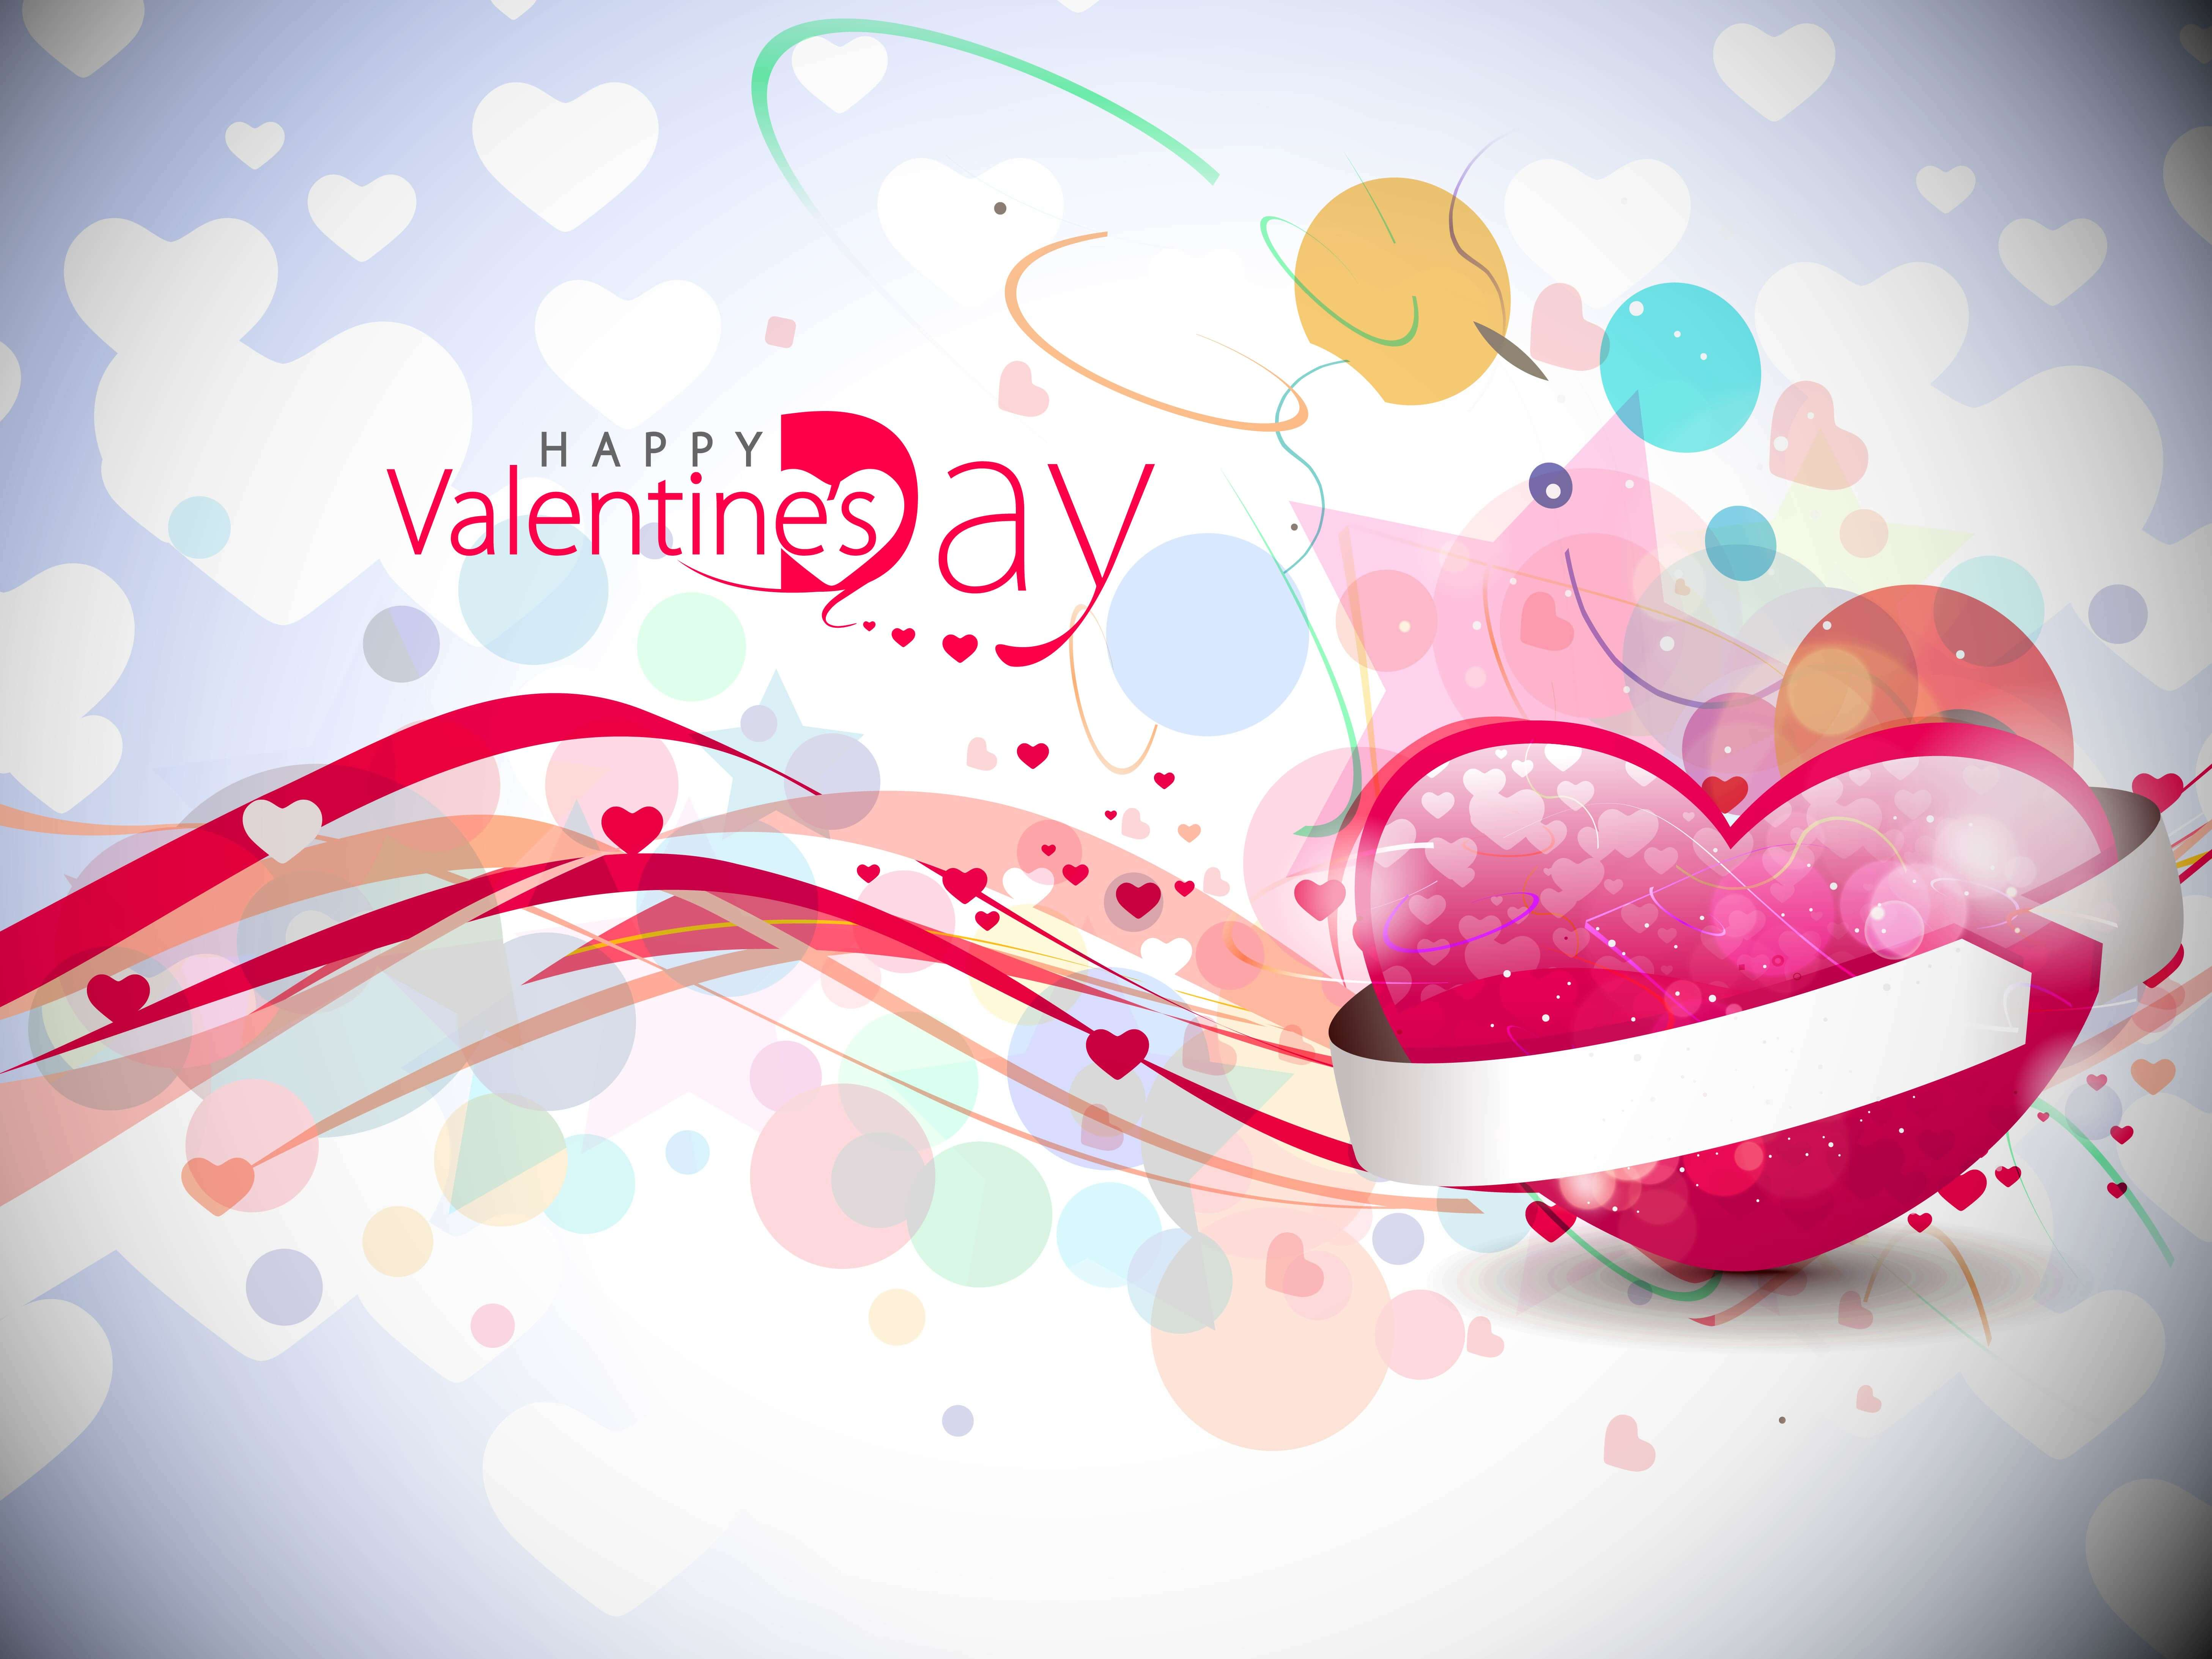 happy valentines day modern hearts latest image wishes hd wallpaper